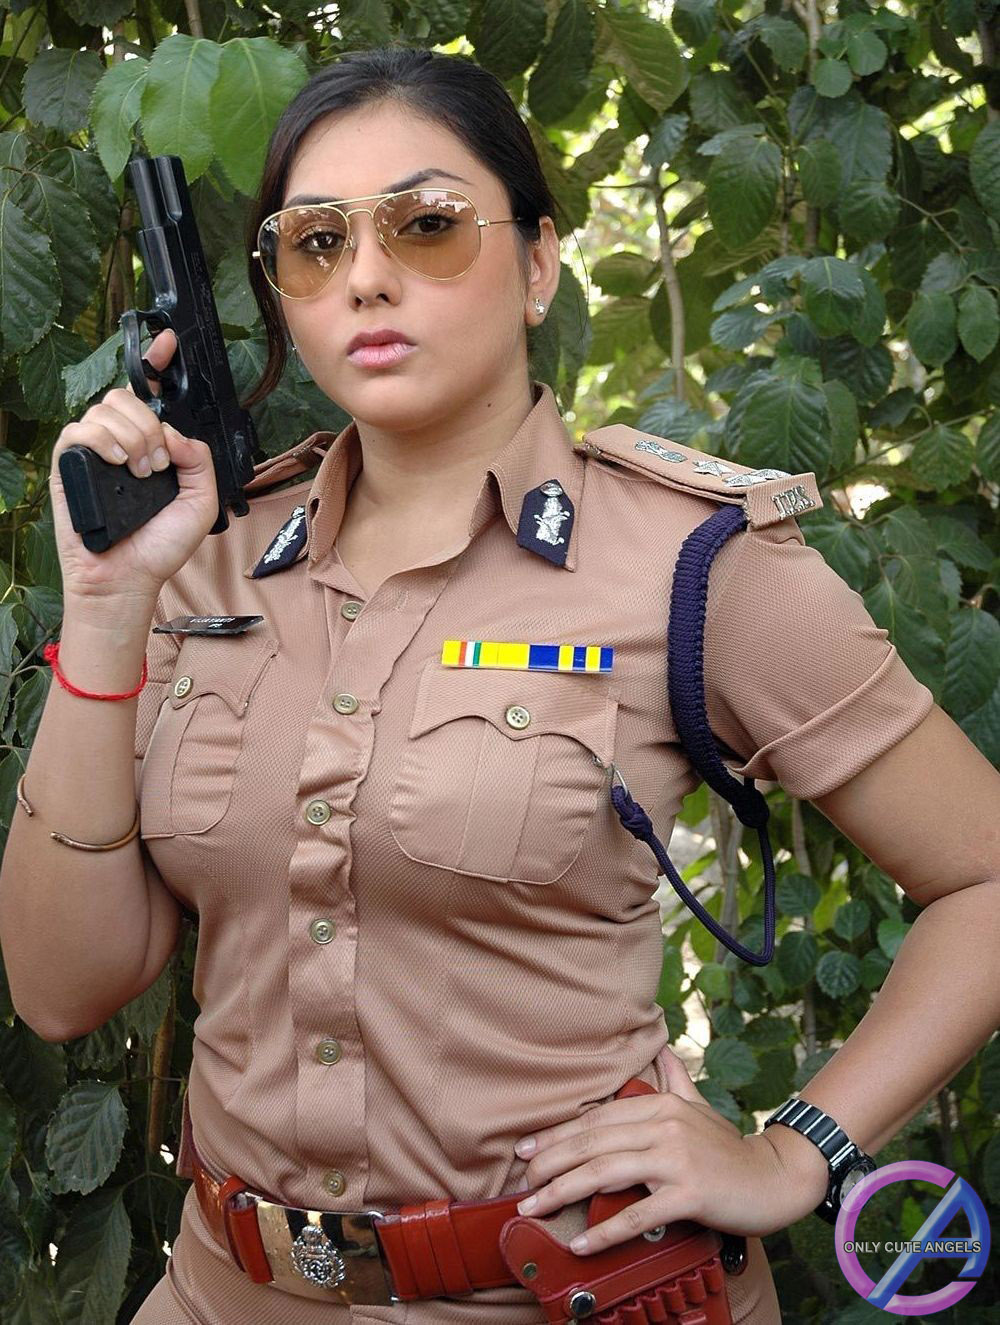 South Actress Namitha In Police Dress ~ Only Cute Angels